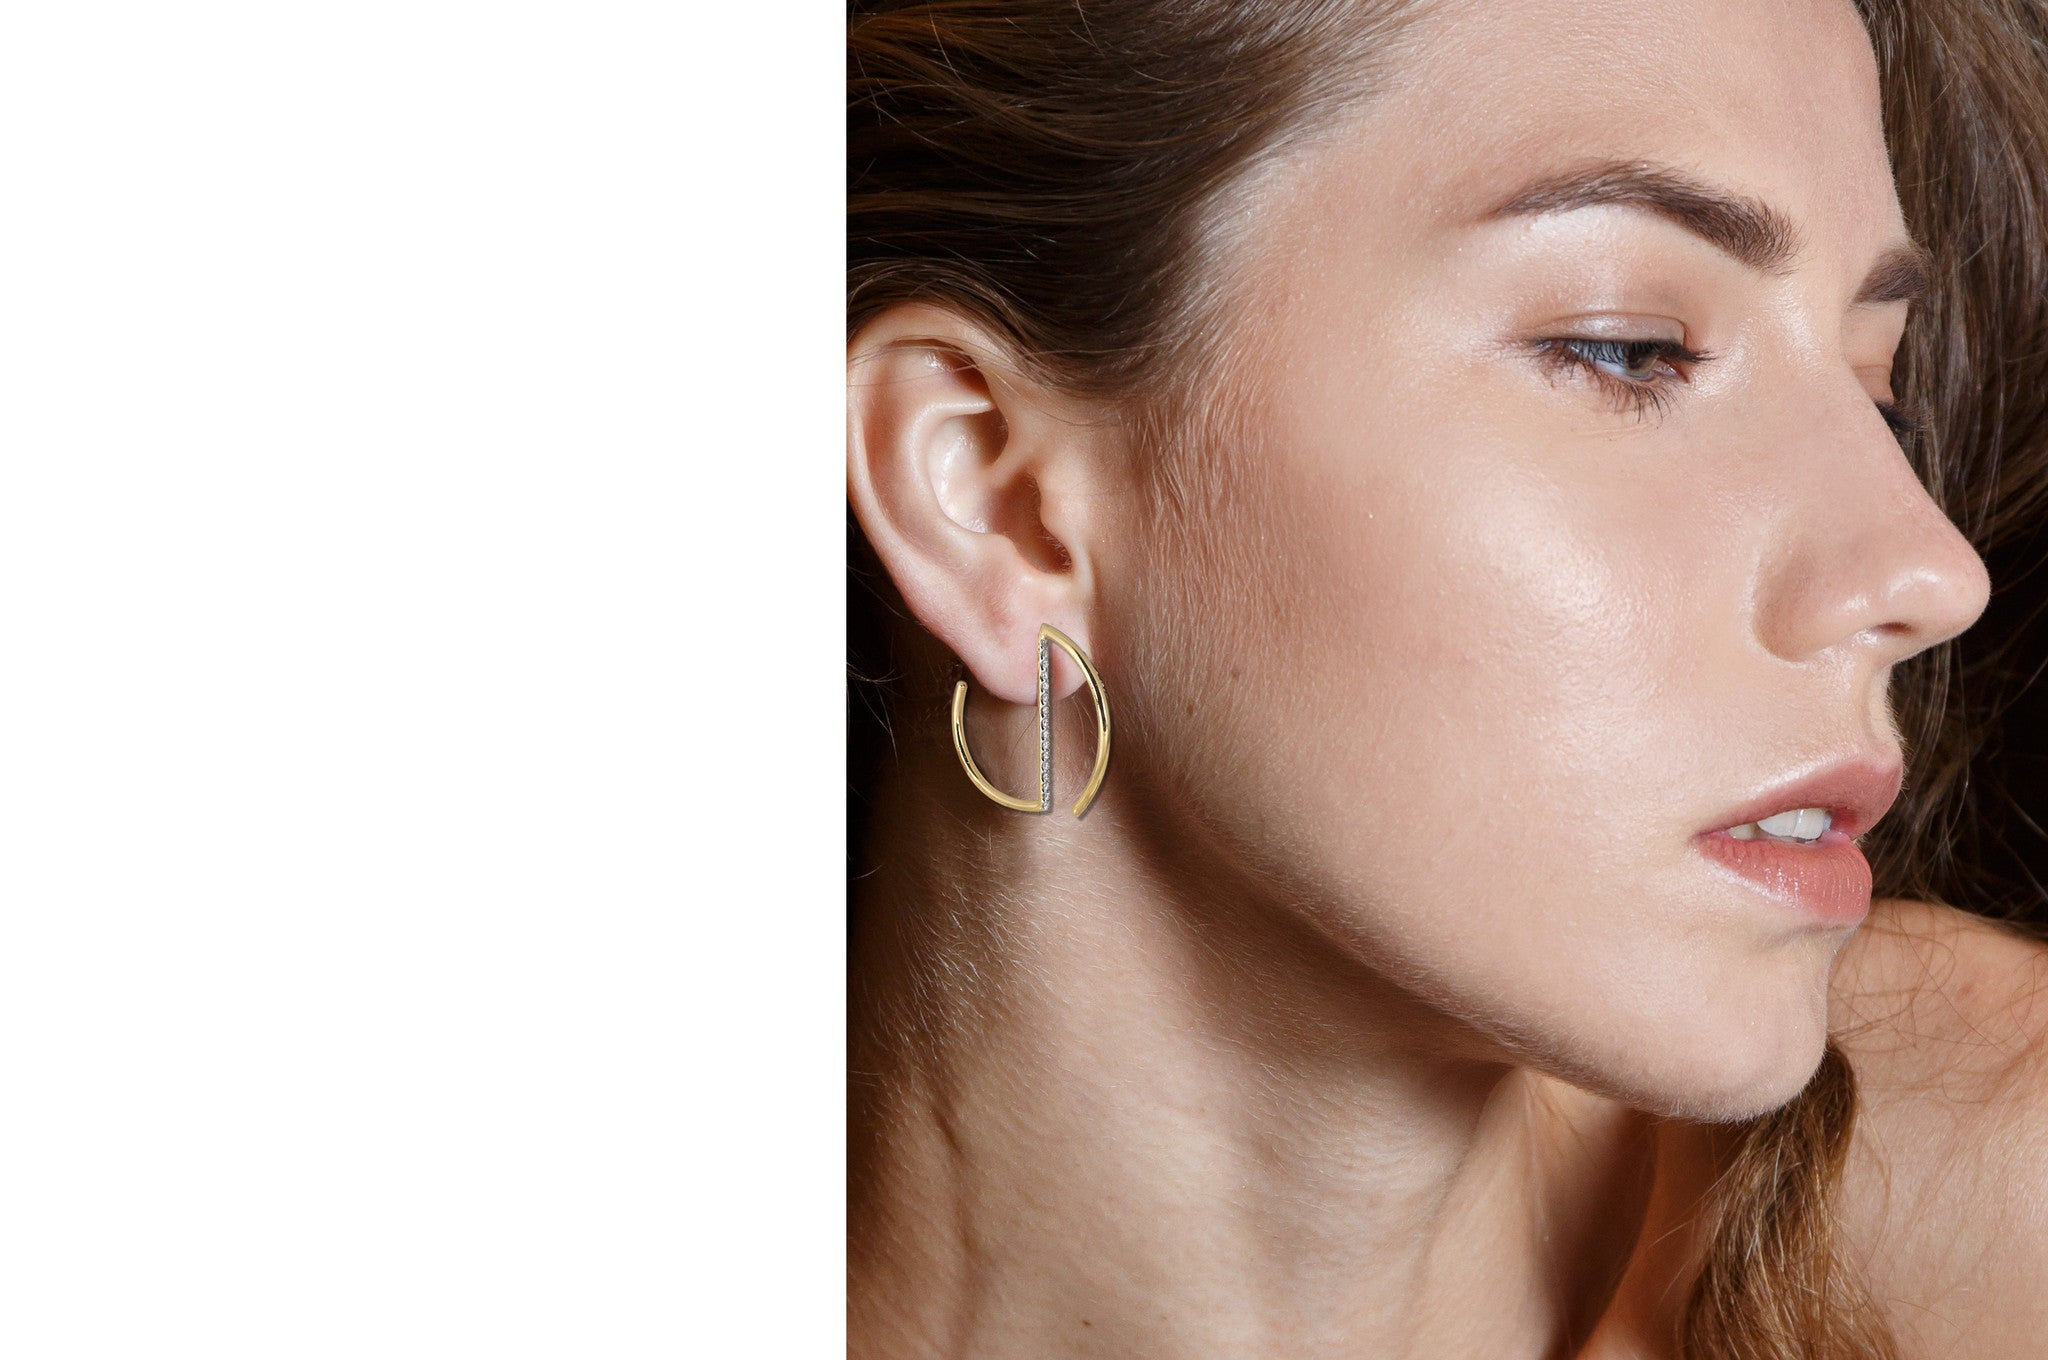 shop face earrings hoops hoop wg earring diamond inside out maddaloni earings round